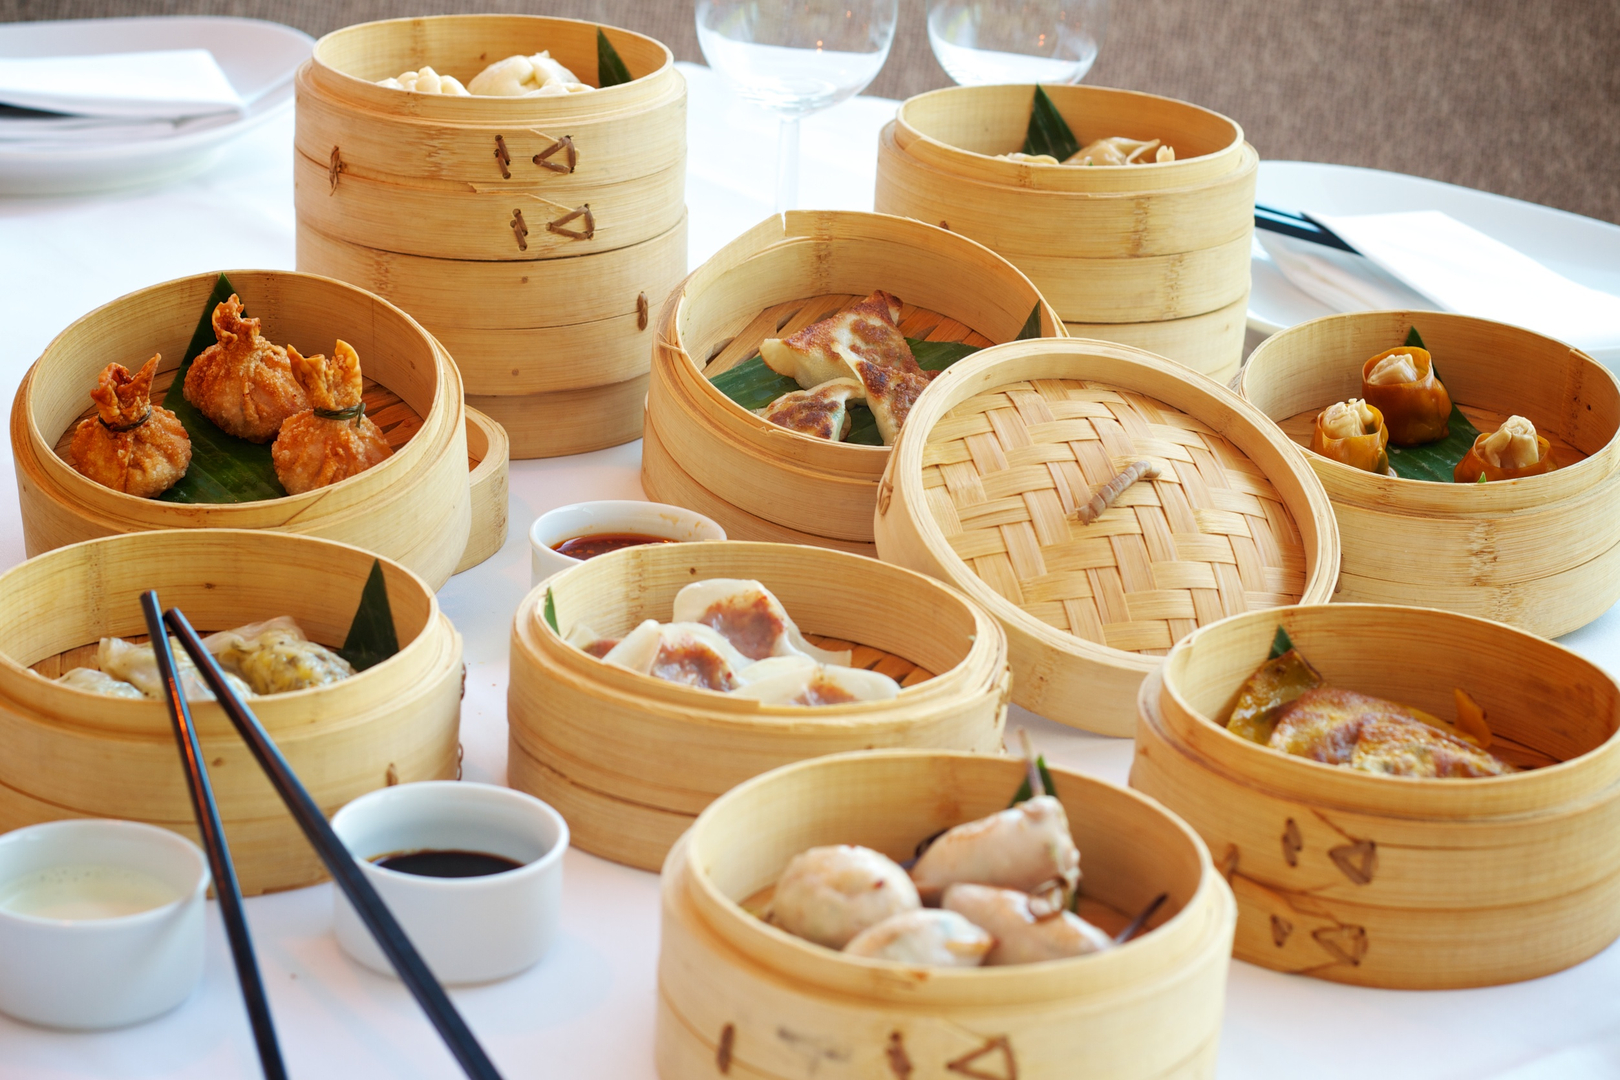 Star Kitchen - Best Dim Sum & Seafood Restaurant in Denver - CO ...